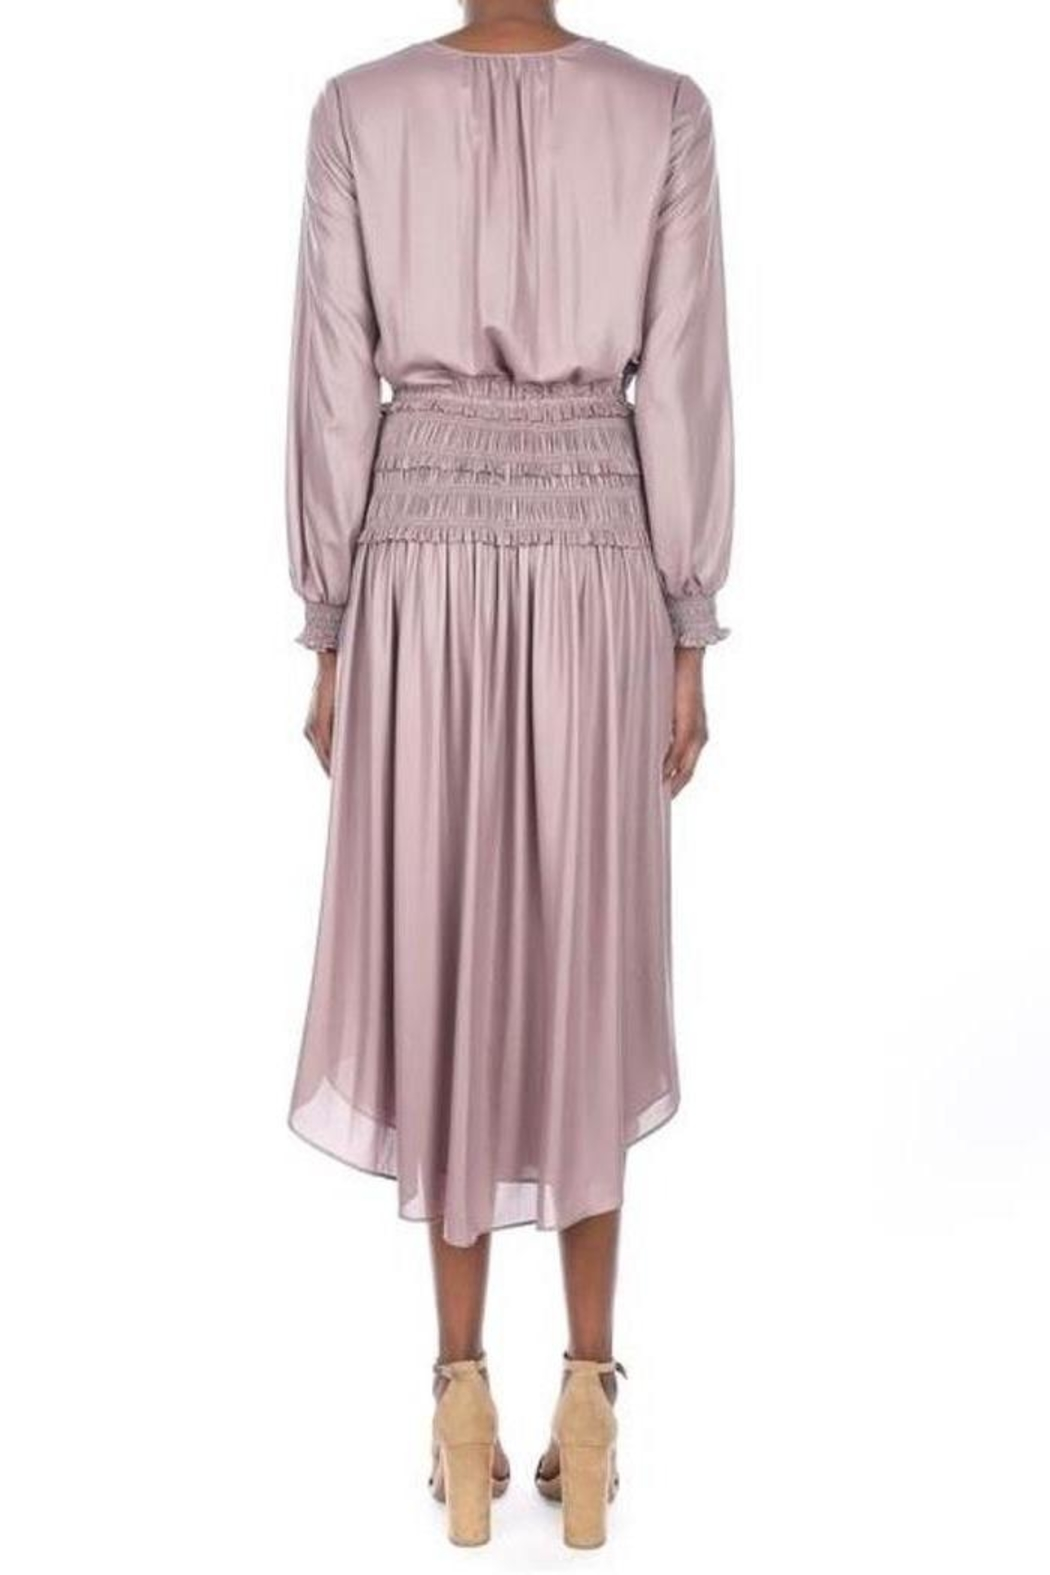 Current Air Smokey Amethyst Dress - Side Cropped Image